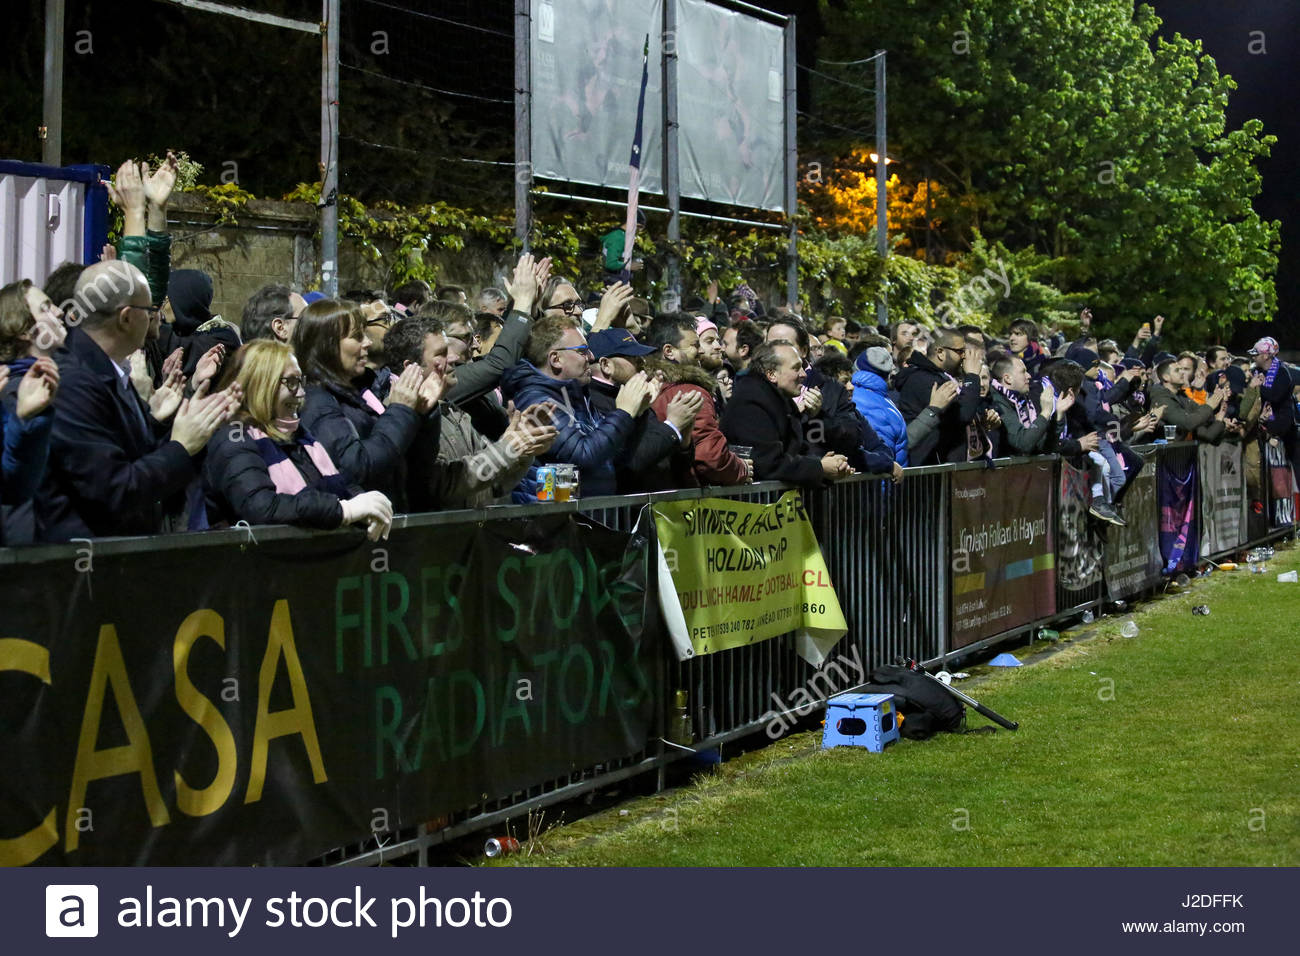 London, UK. 27th April, 2017. Fans celebrates after Dulwich Hamlet won their Ryman Premier Play-Offs Semi-Finals - Stock Image